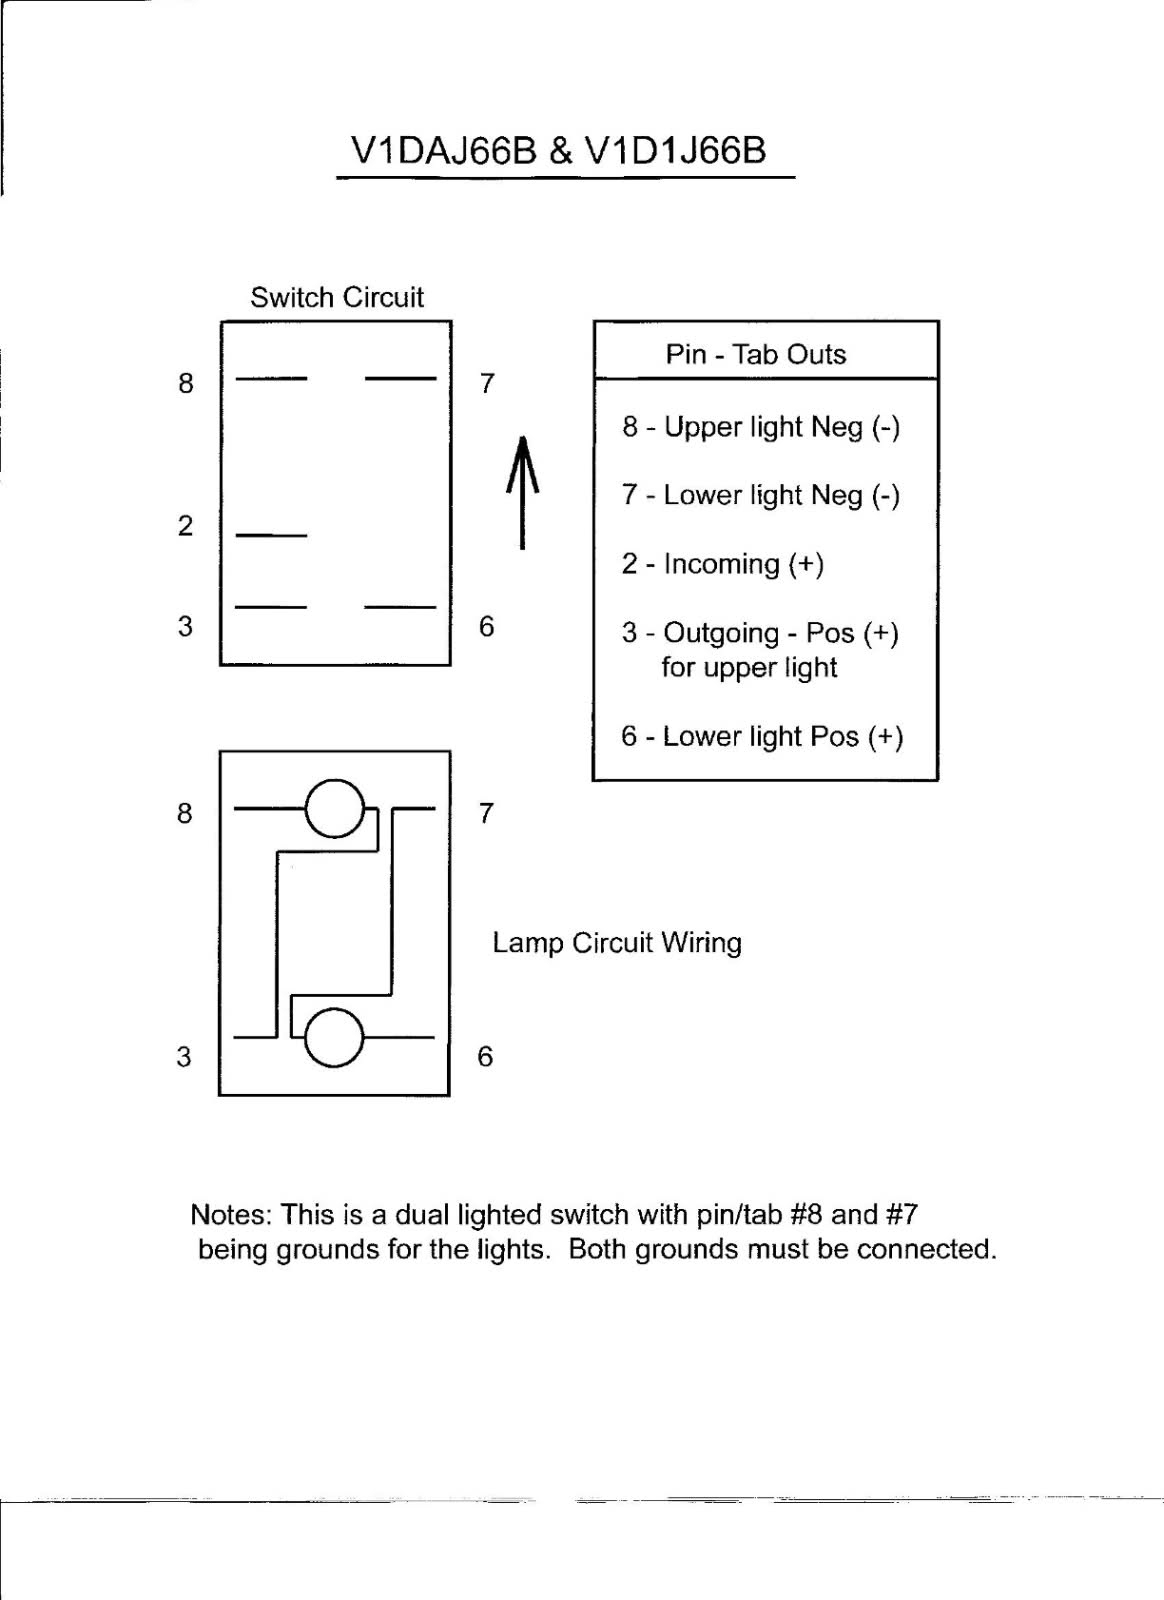 Illuminated Rocker Switch Wiring Diagram | Wiring Diagram - Illuminated Rocker Switch Wiring Diagram